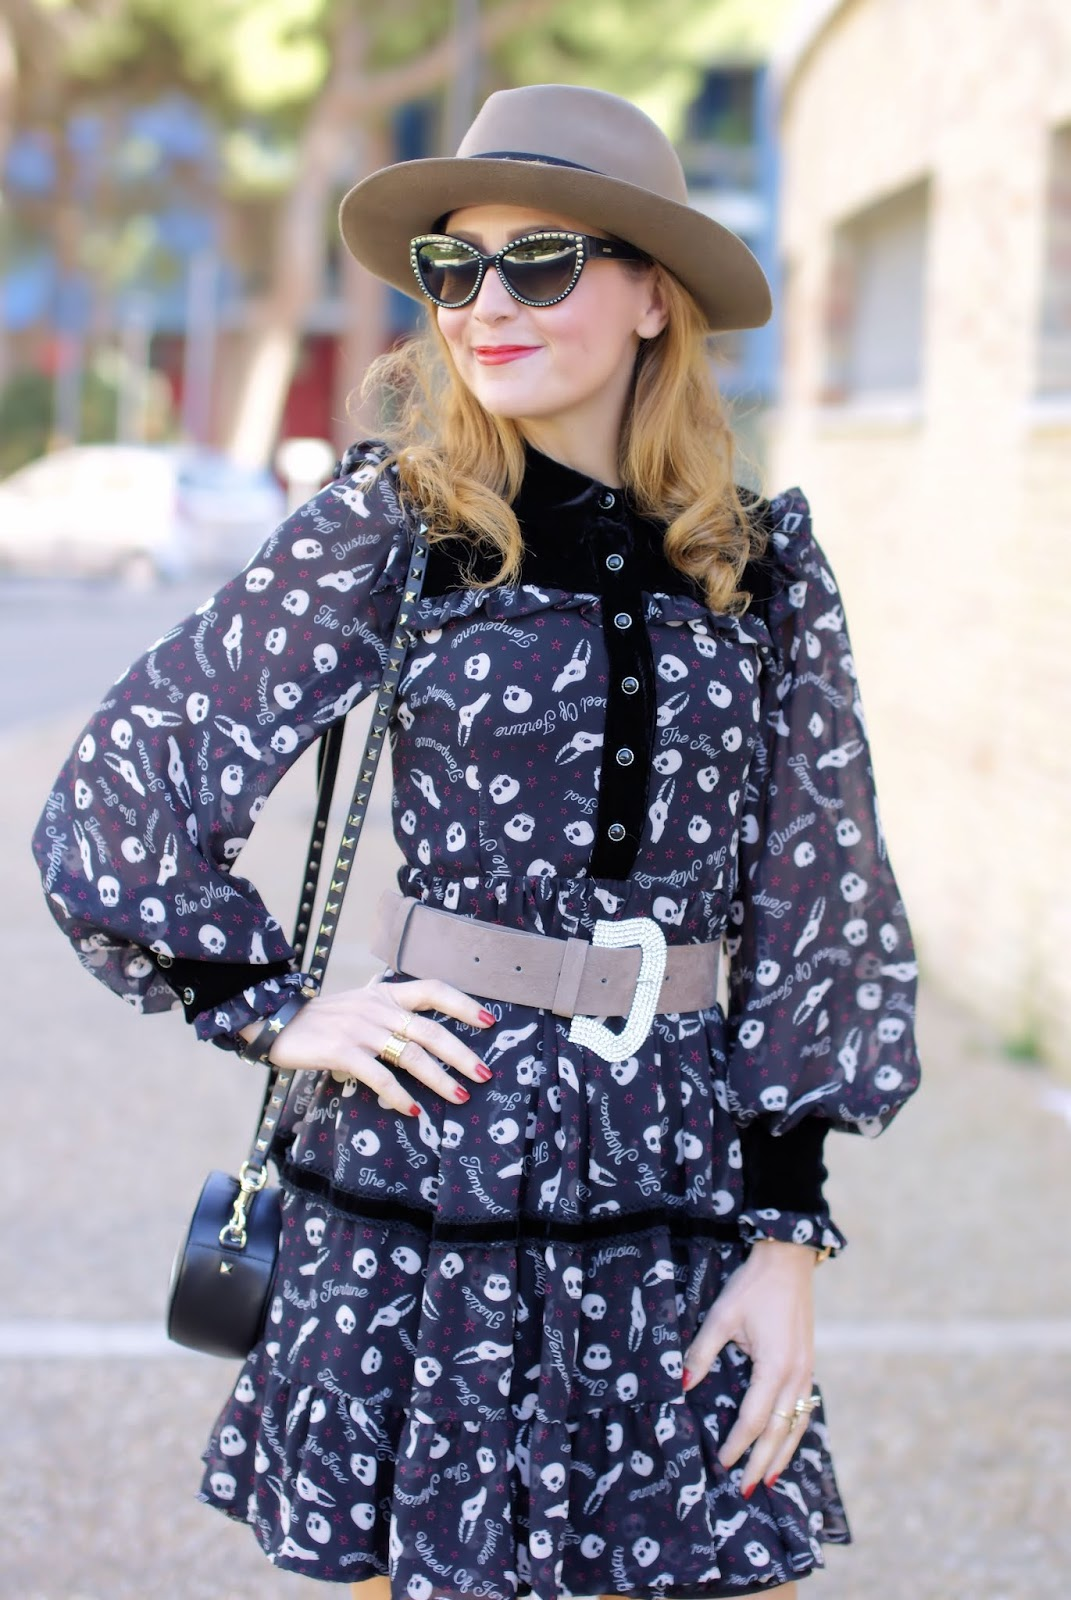 Maggie Sweet dress, Anye By cintura con strass on Fashion and Cookies fashion blog, fashion blogger style